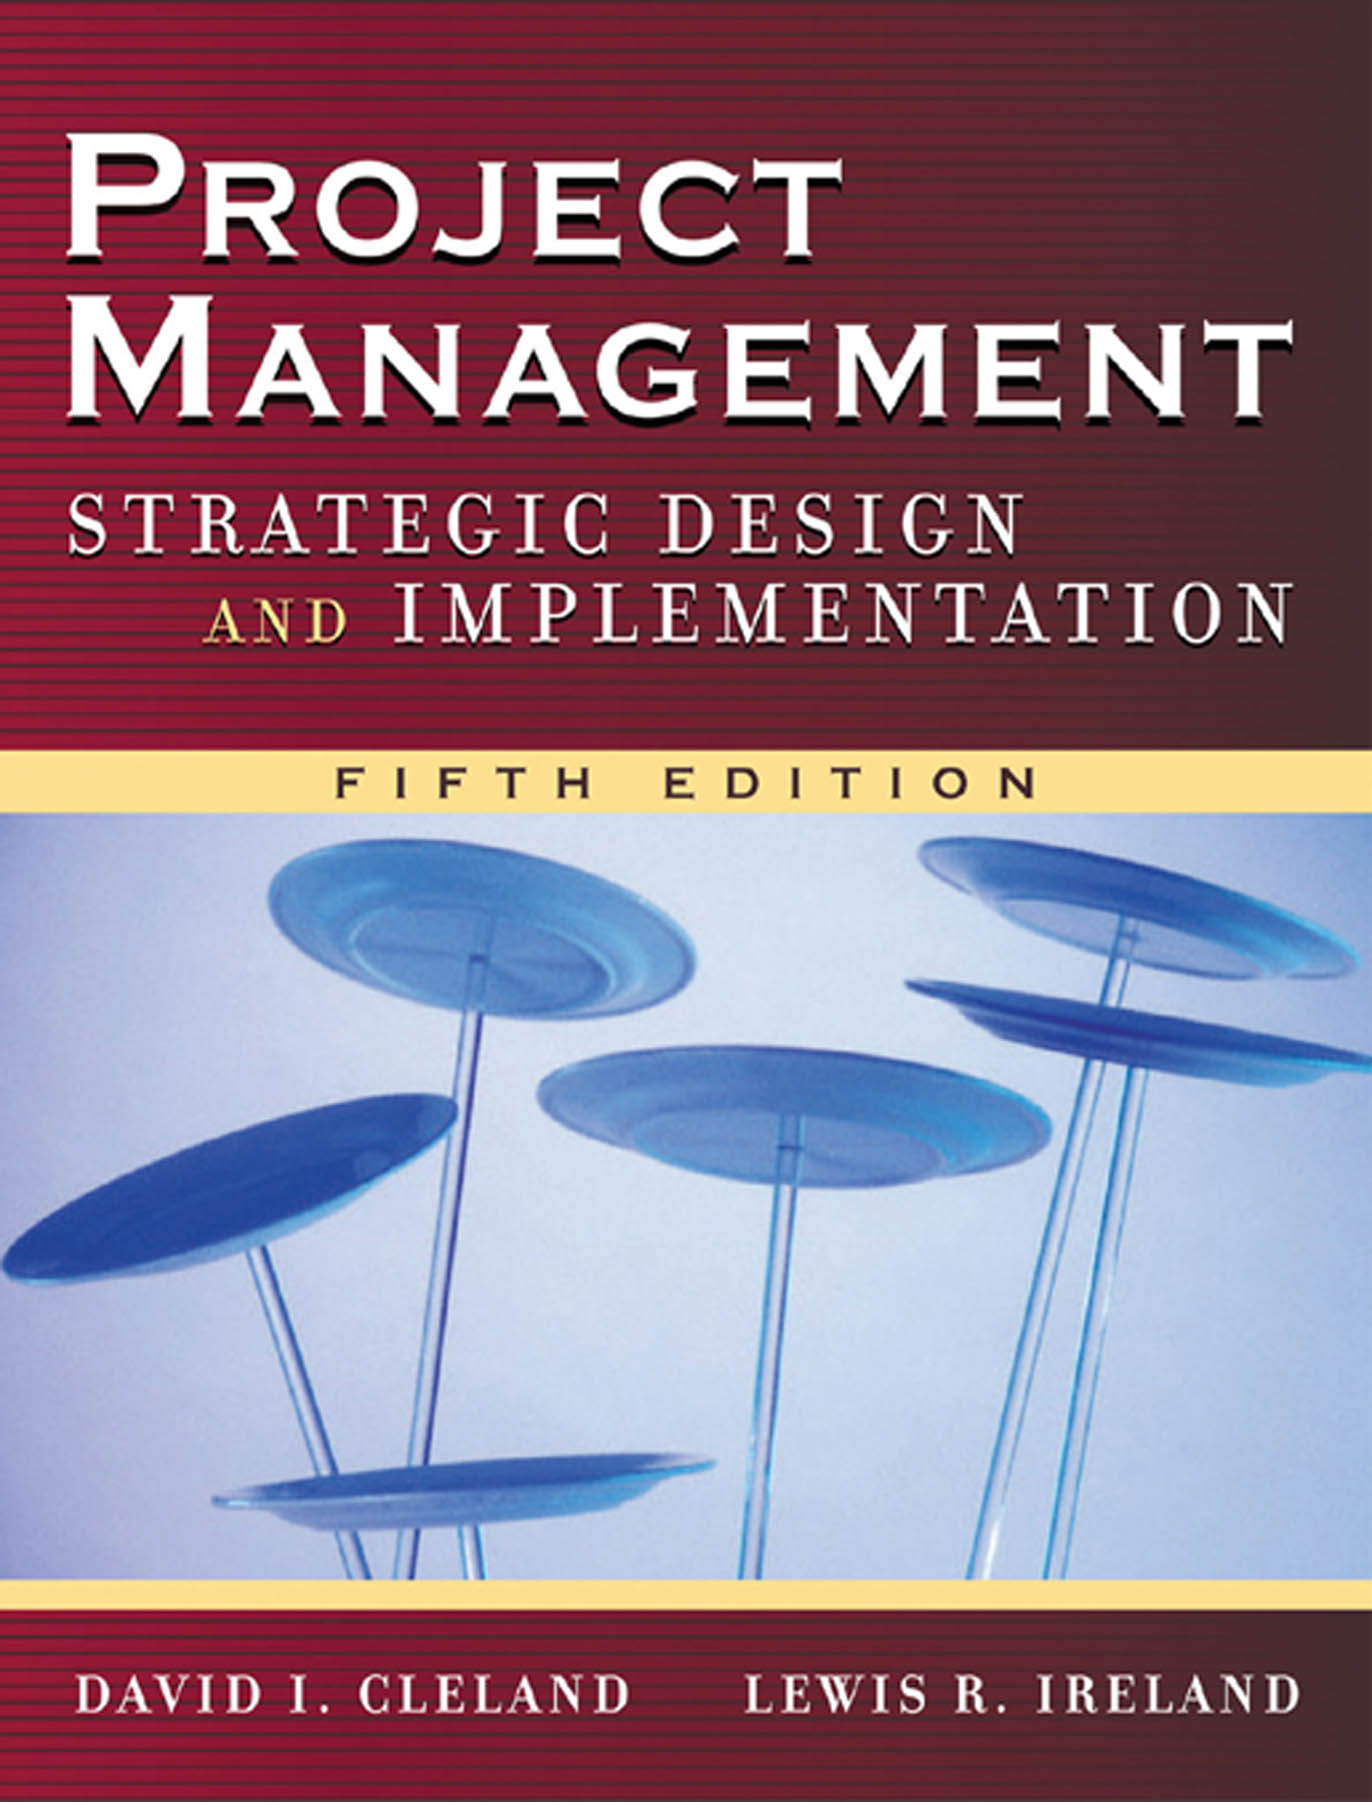 Download Ebook Project Management (5th ed.) by David L. Cleland Pdf